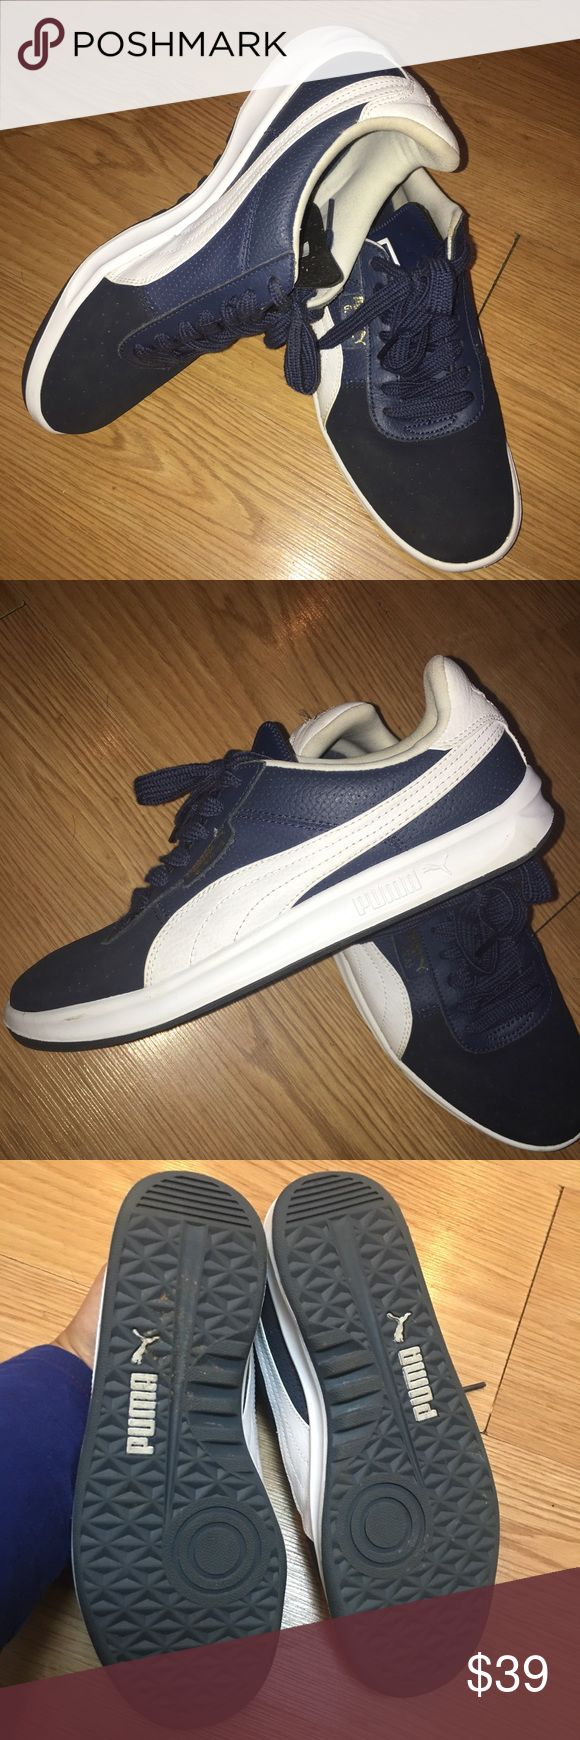 Men's Puma G. VIllas tennis sneaker In Excellent condition! Only worn a handful of times. Dark blue Puma Shoes Sneakers